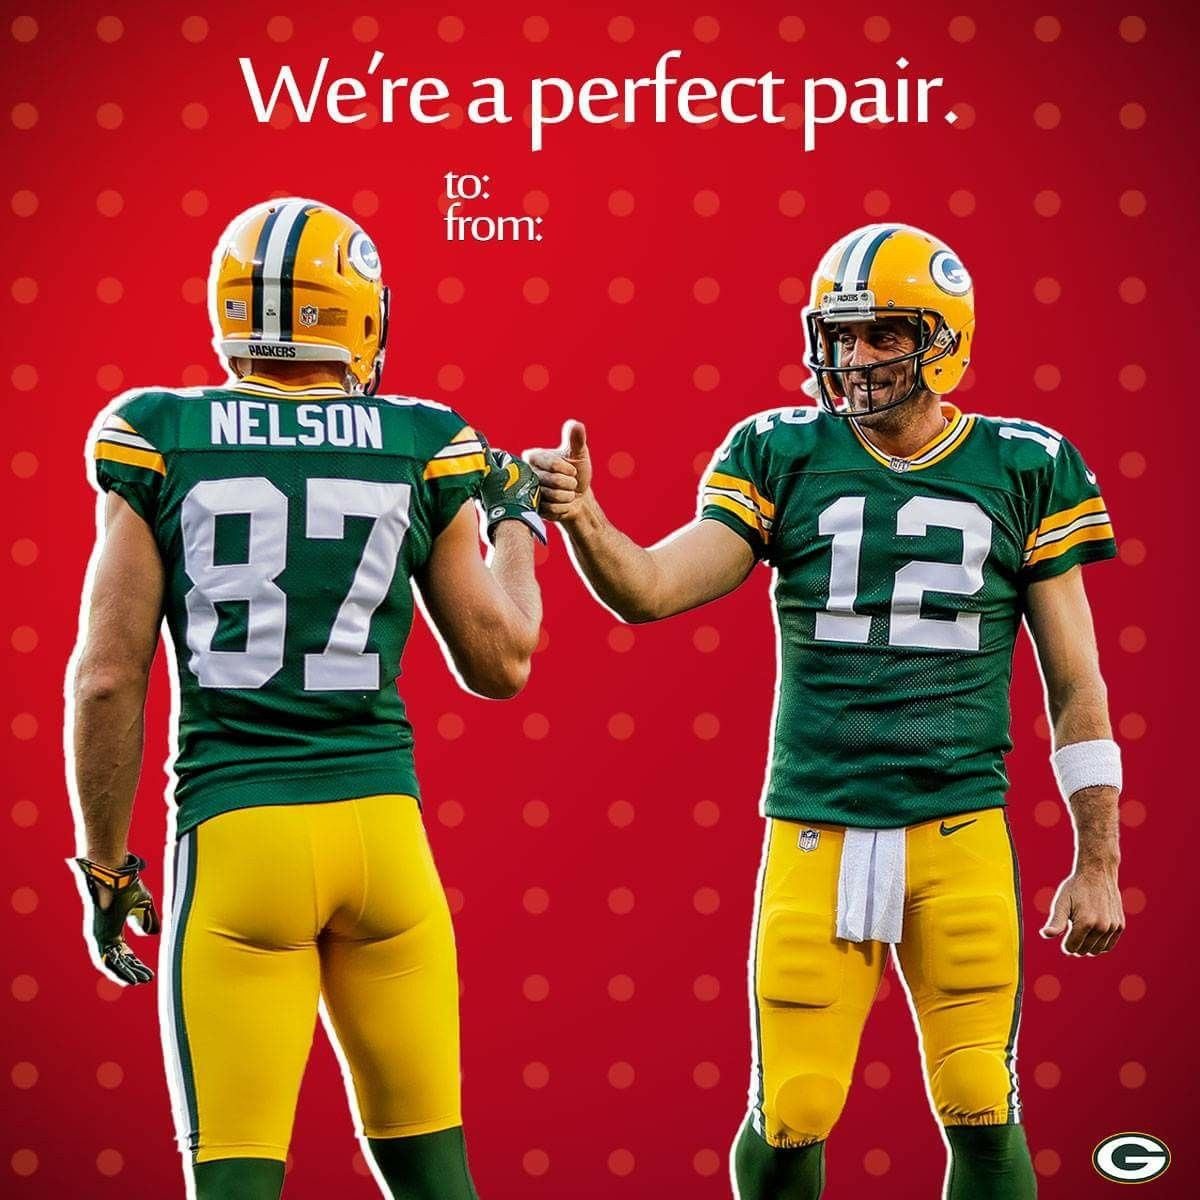 Pin By Lee Talbott On Valentine Jordy Nelson Green Bay Packers Packers